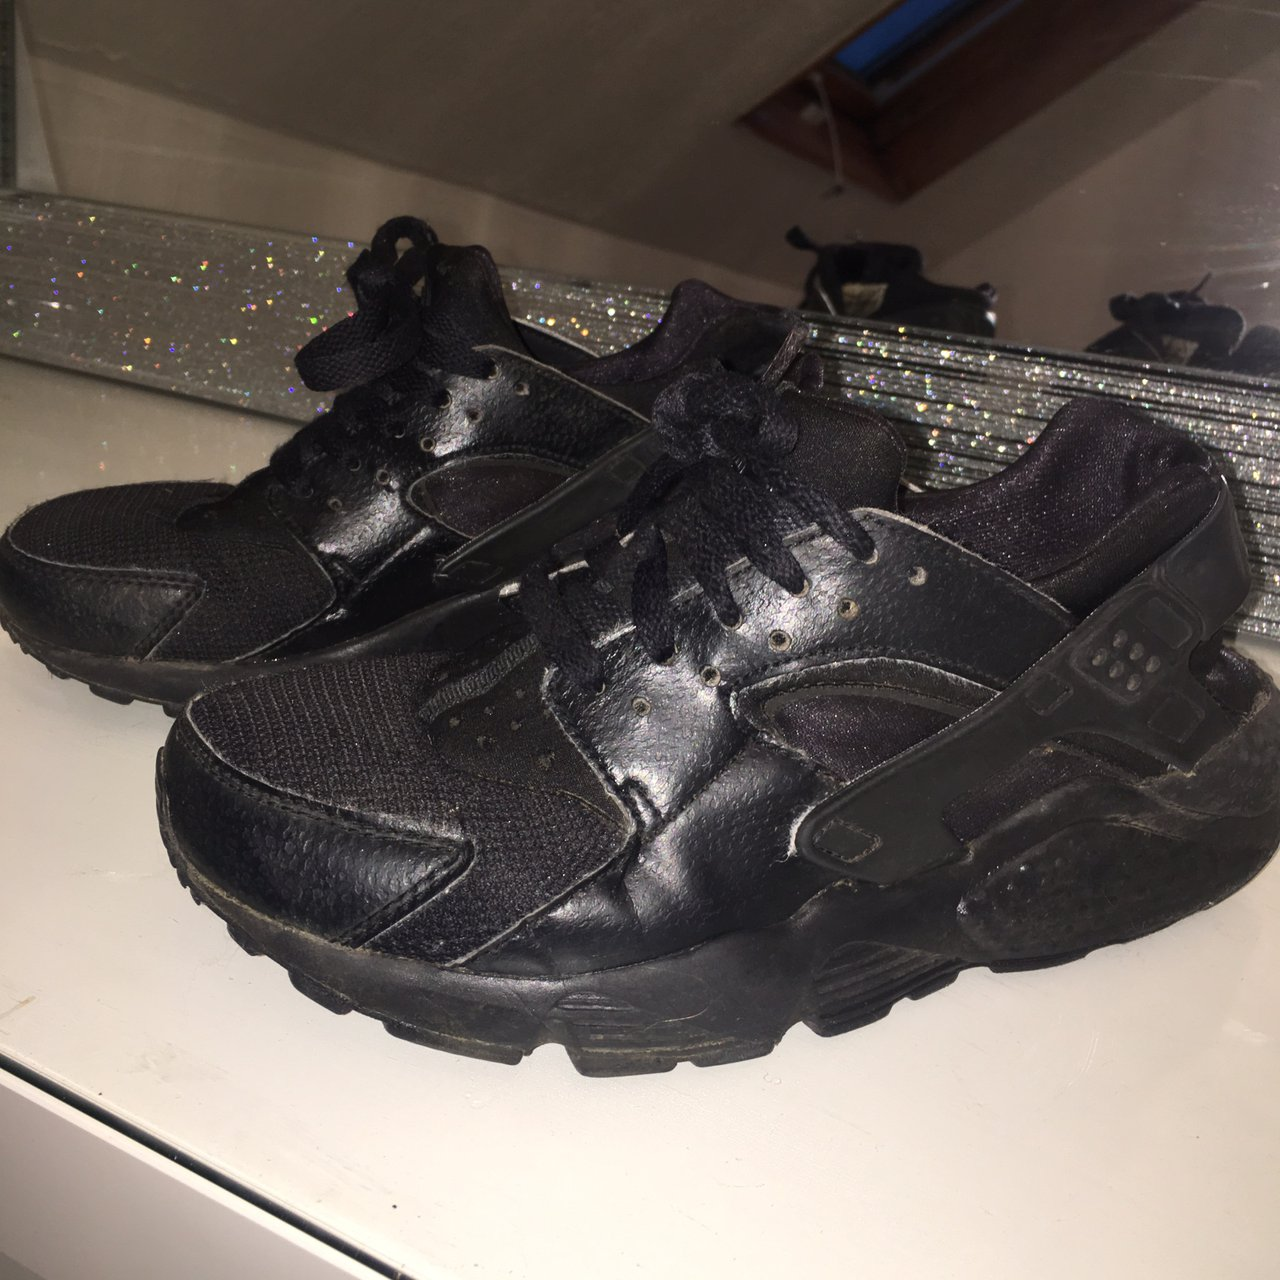 6dac5f16872 Nike Huaraches Junior. Worn but good condition. Selling uk - Depop